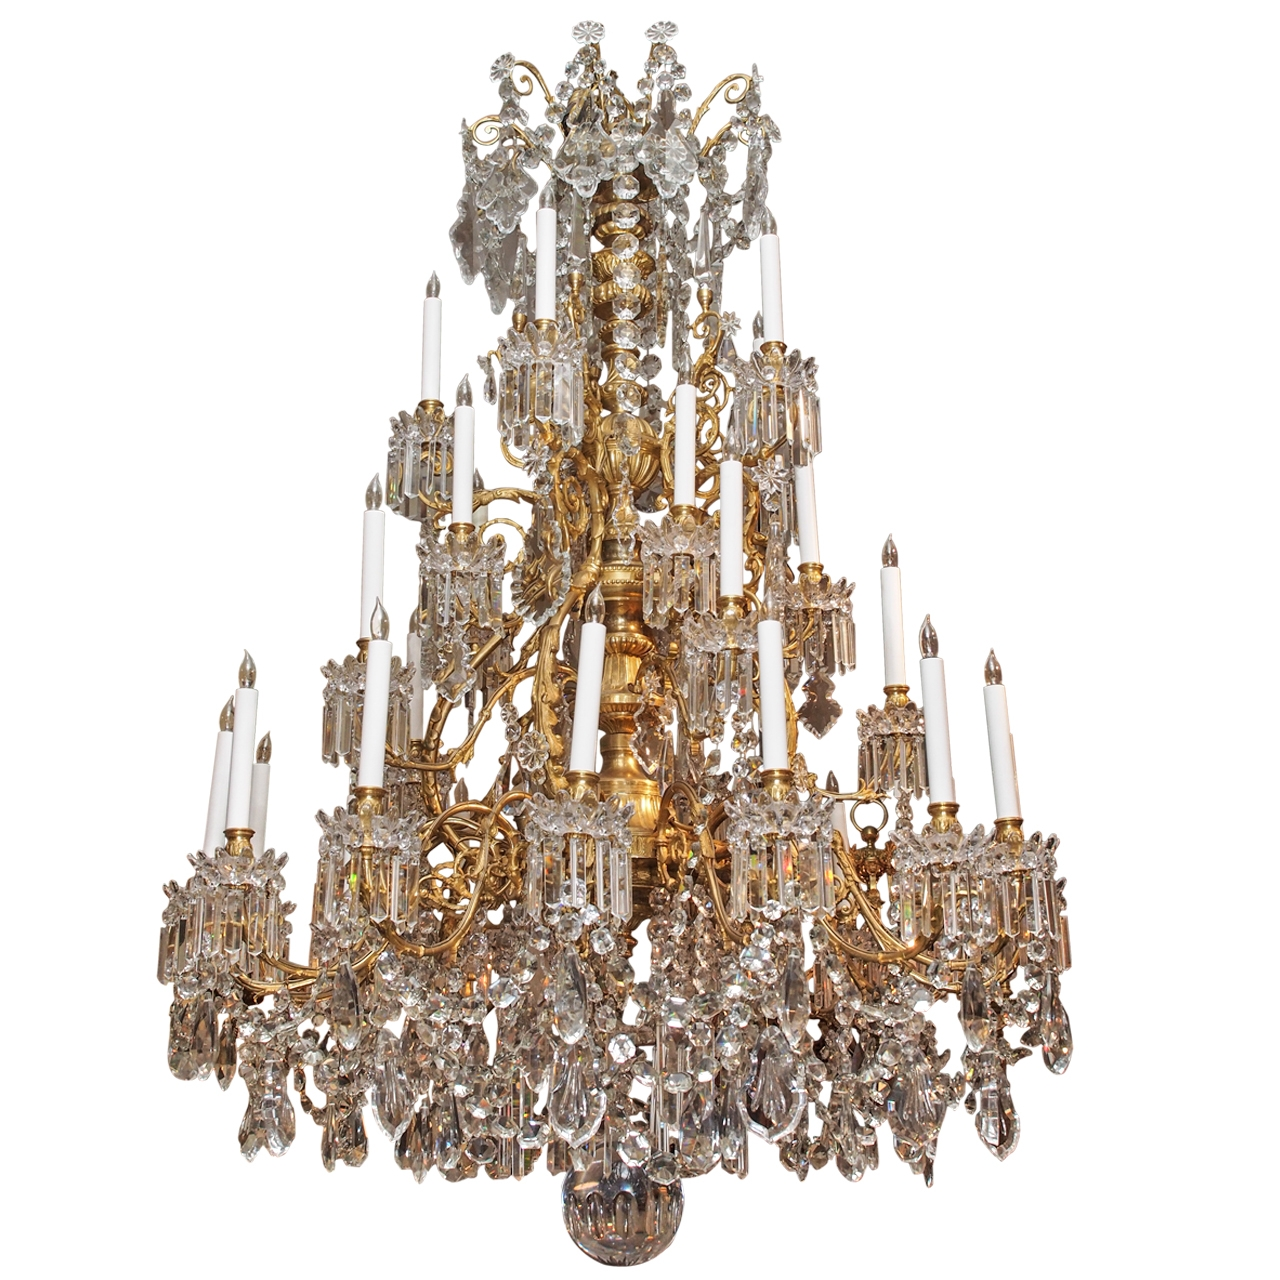 Magnificent Antique French Baccarat Crystal Chandelier Circa 1850 Within Antique Chandeliers (#12 of 12)